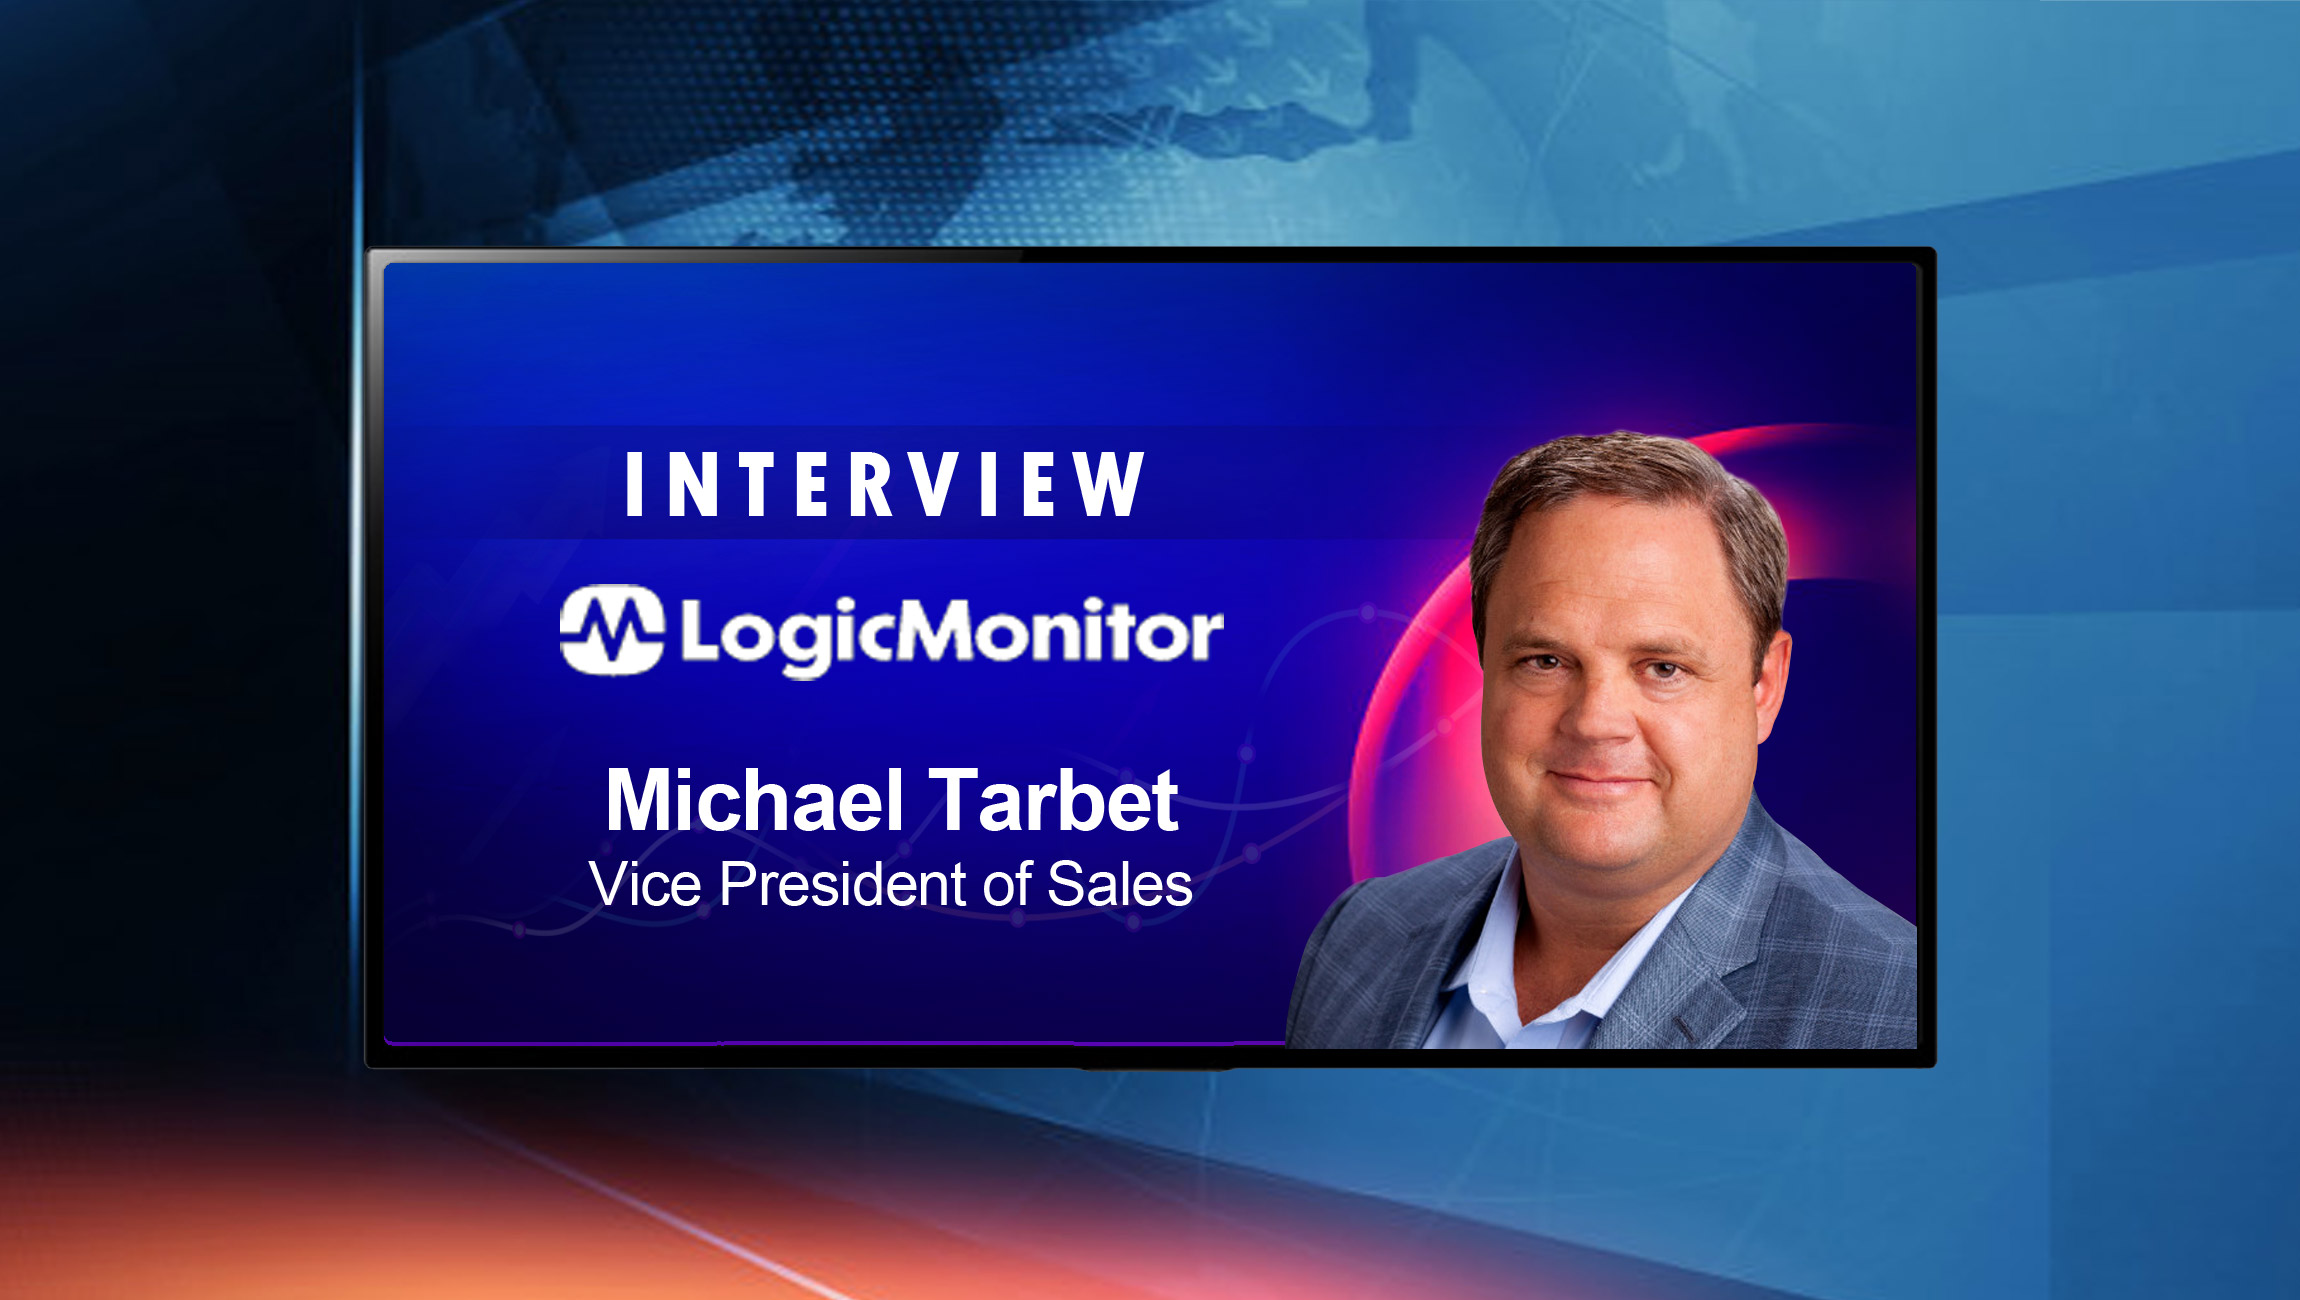 SalesTechStar Interview with Michael Tarbet, Vice President of Sales at LogicMonitor